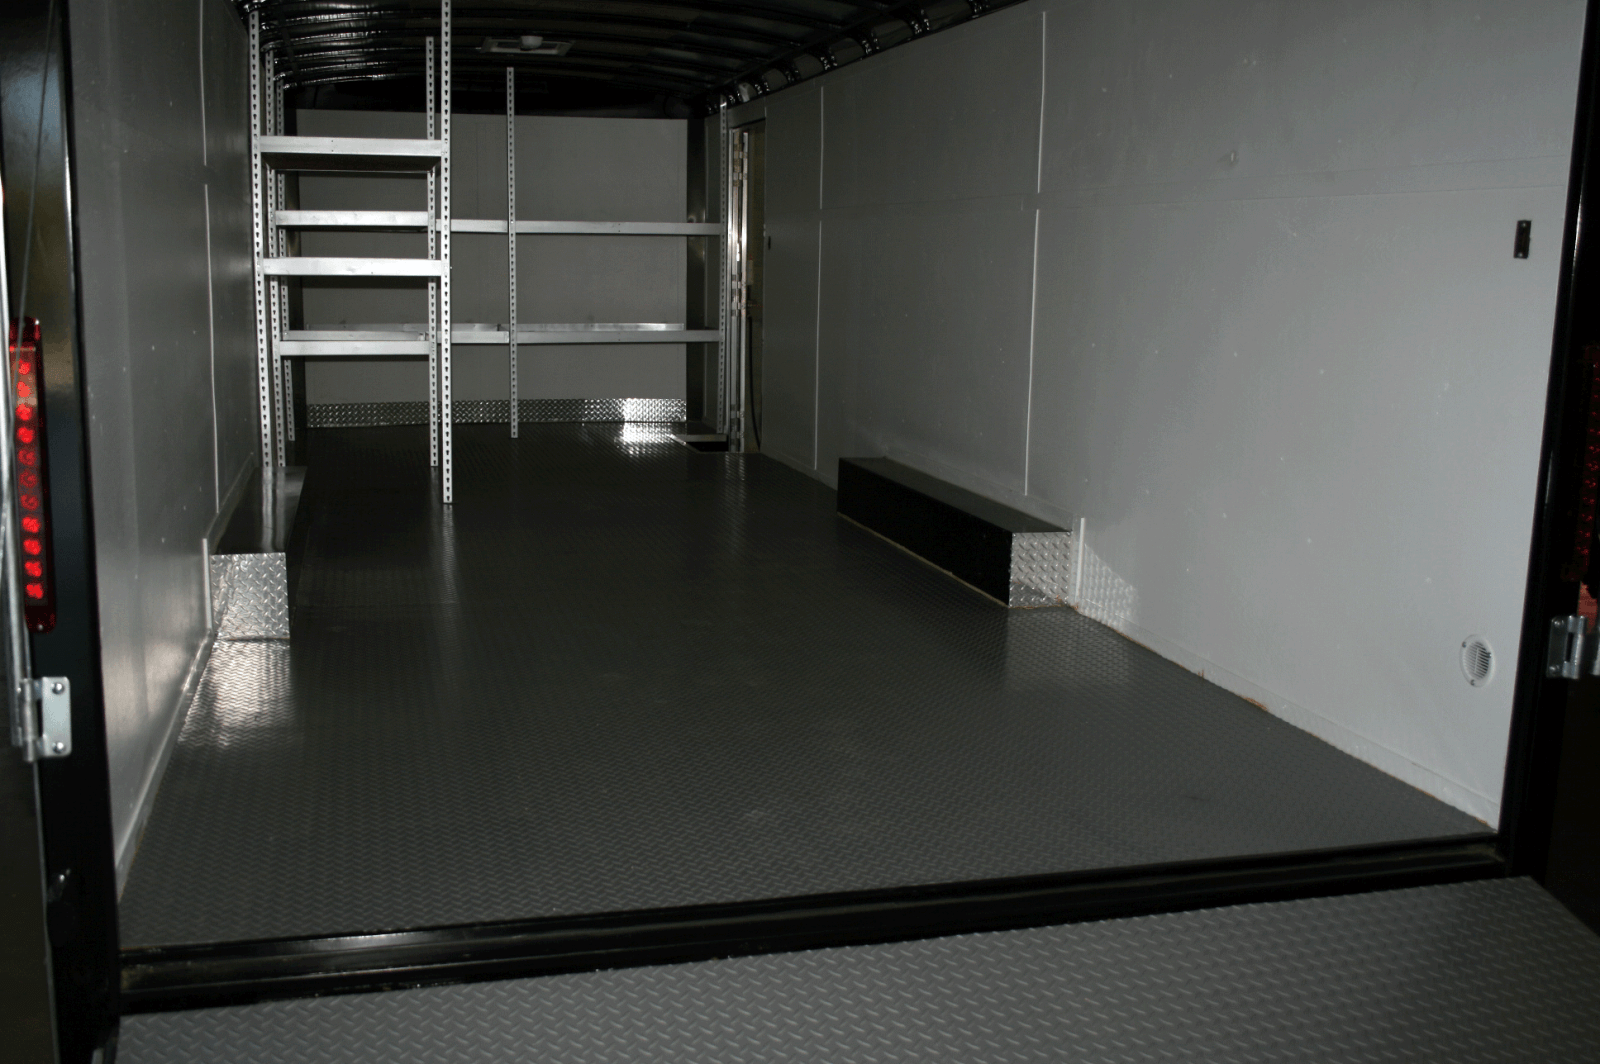 lenexa fire department trailer floor